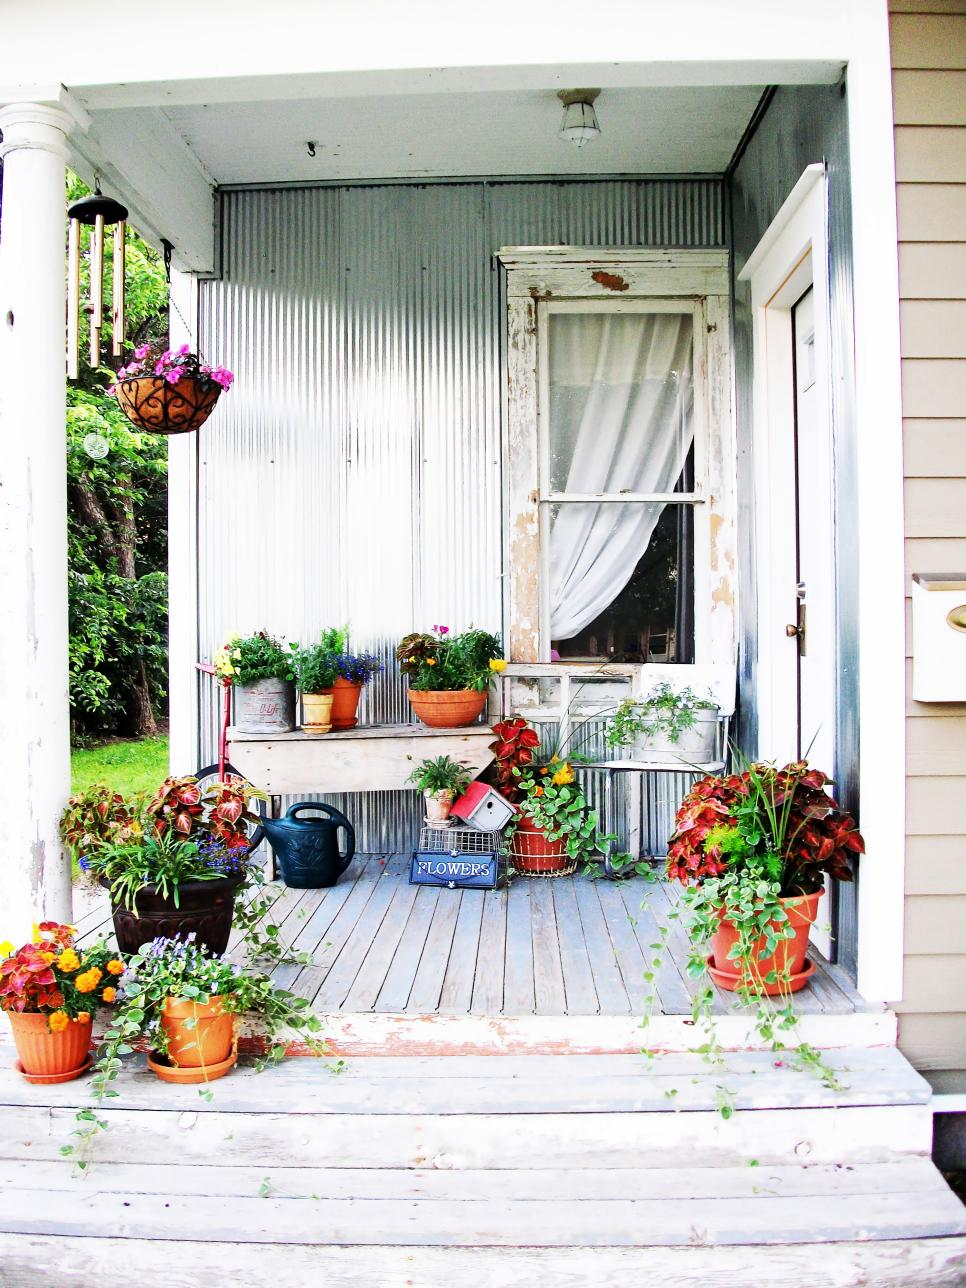 Shabby chic decorating ideas for porches and gardens hgtv for Outdoor front porch decor